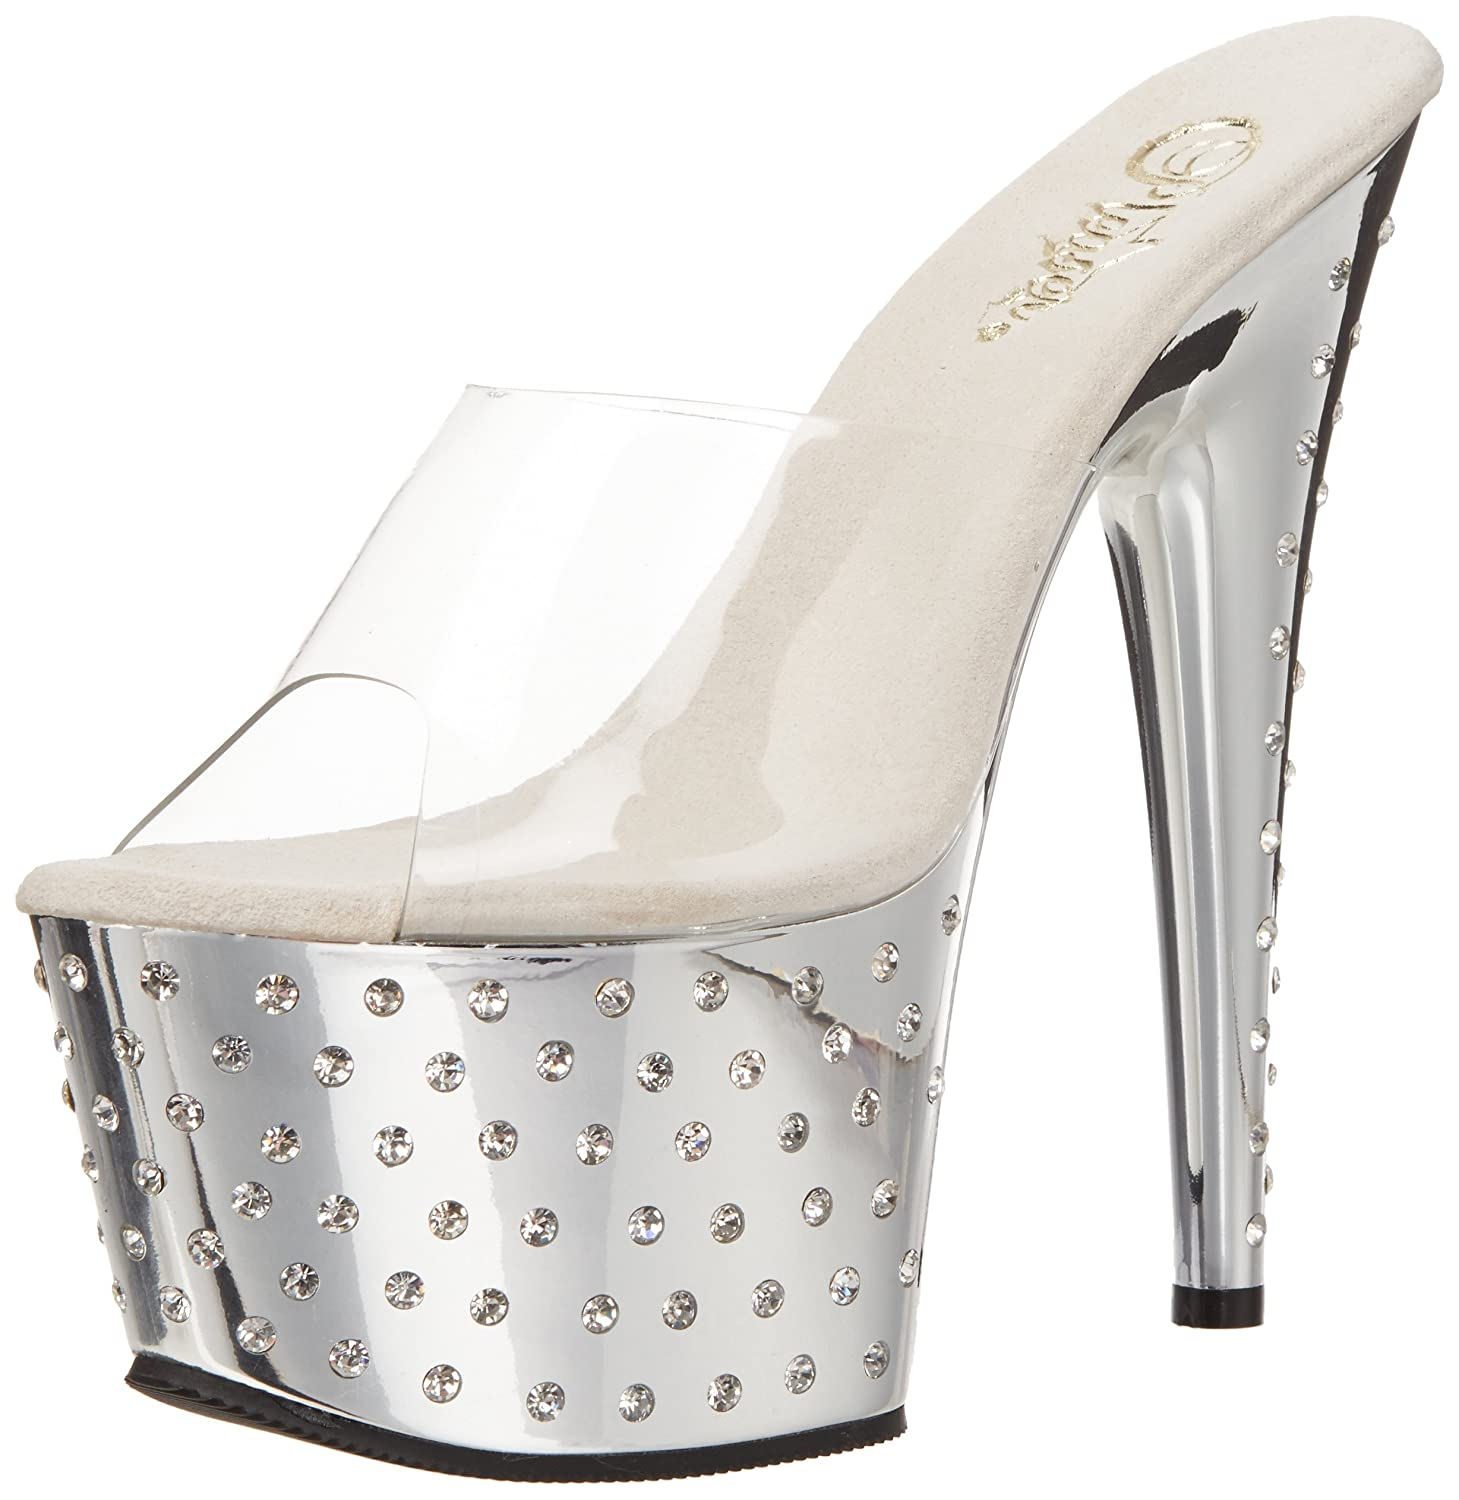 Pleaser Women's Stardust-701 Sandal B004JHH90E 9 M US|Clear/Silver Chrome